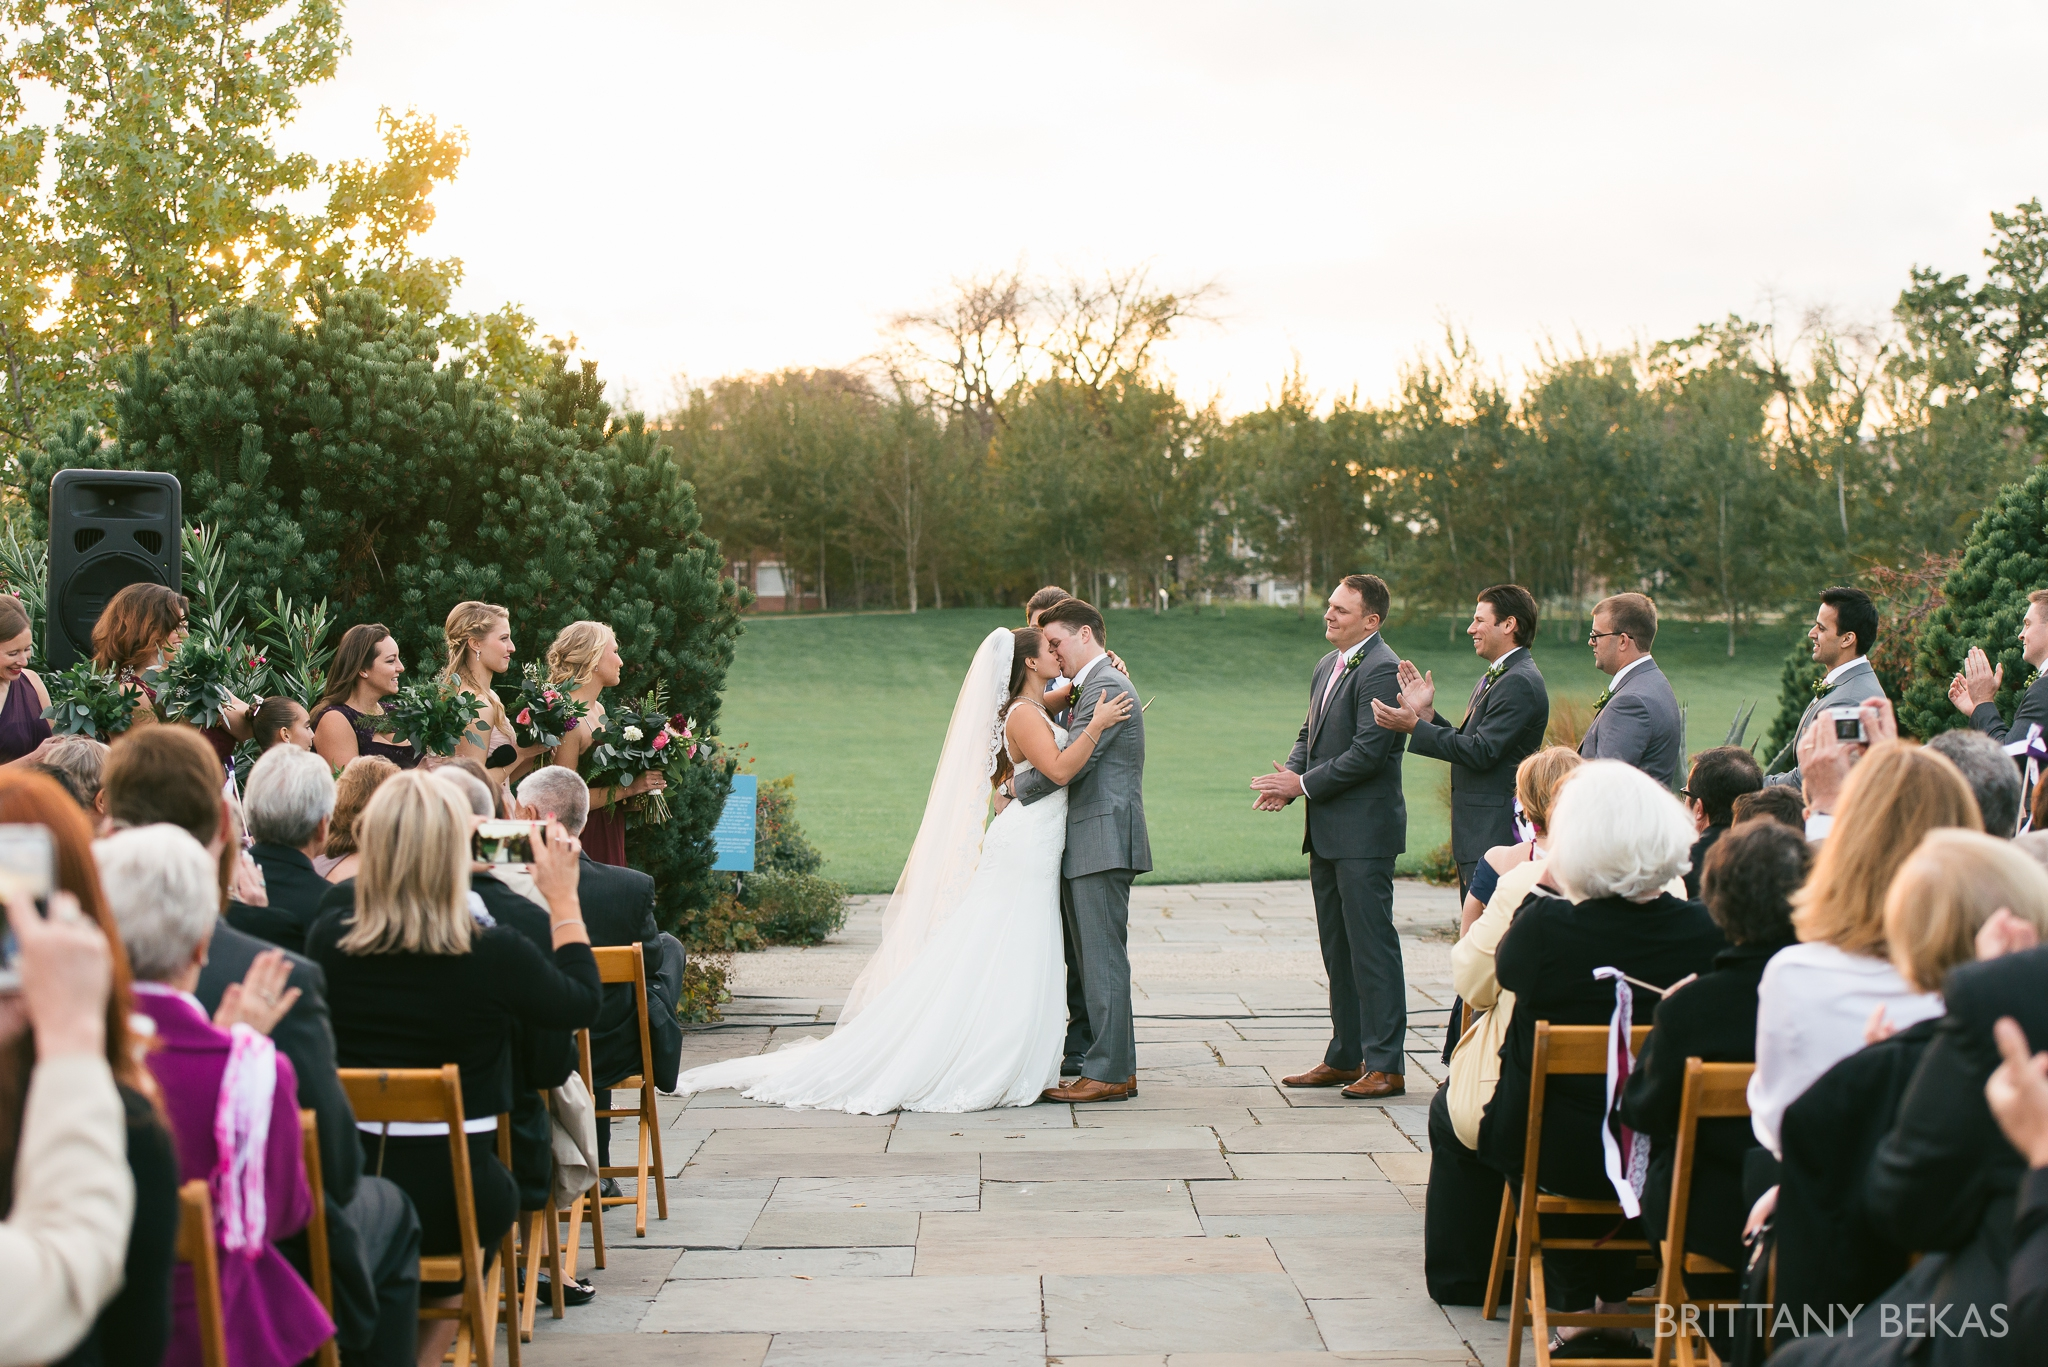 Chicago Wedding Garfield Park Conservatory Wedding Photos - Brittany Bekas Photography_0044